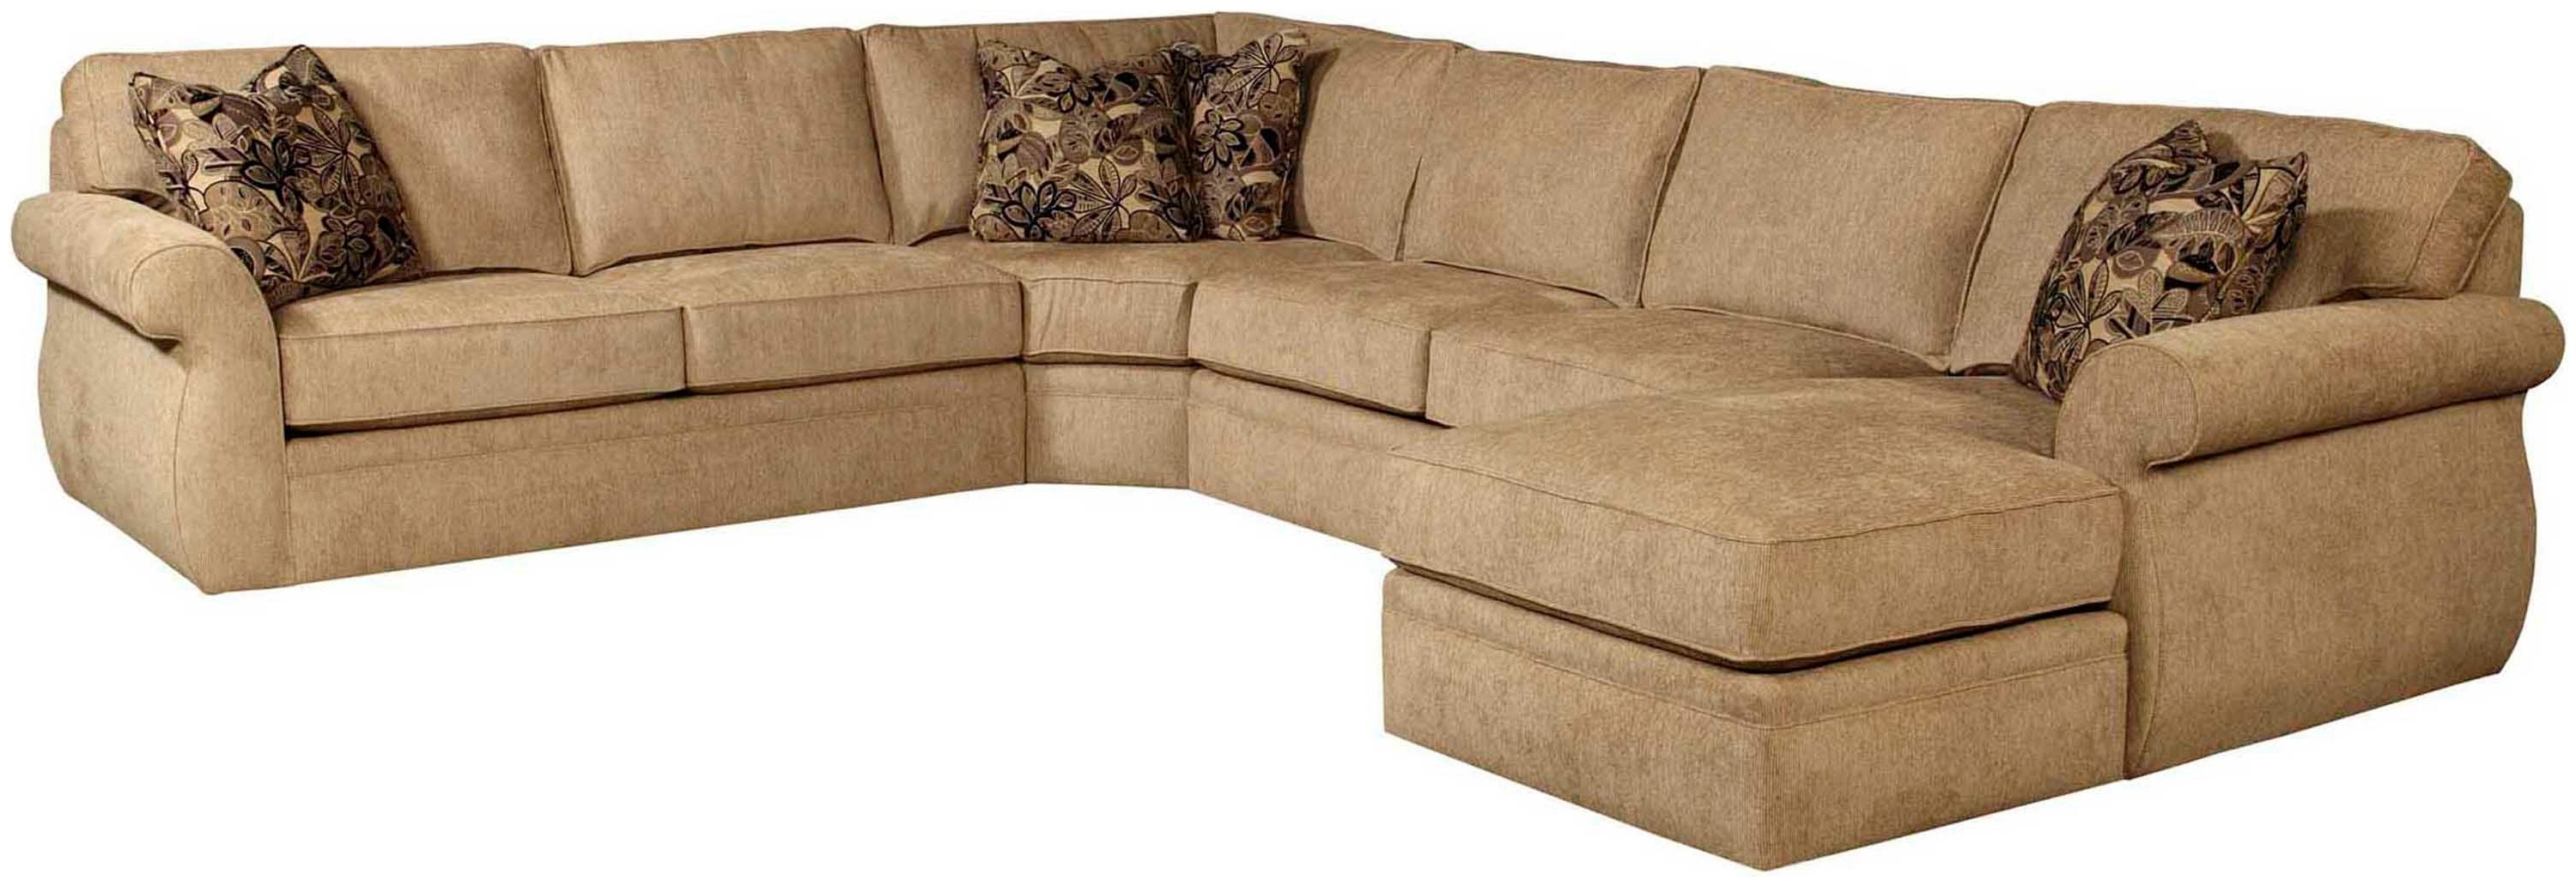 Well Known Sectionals With Chaise Intended For Furniture: Couch With Chaise Chaise Sectional (View 14 of 15)